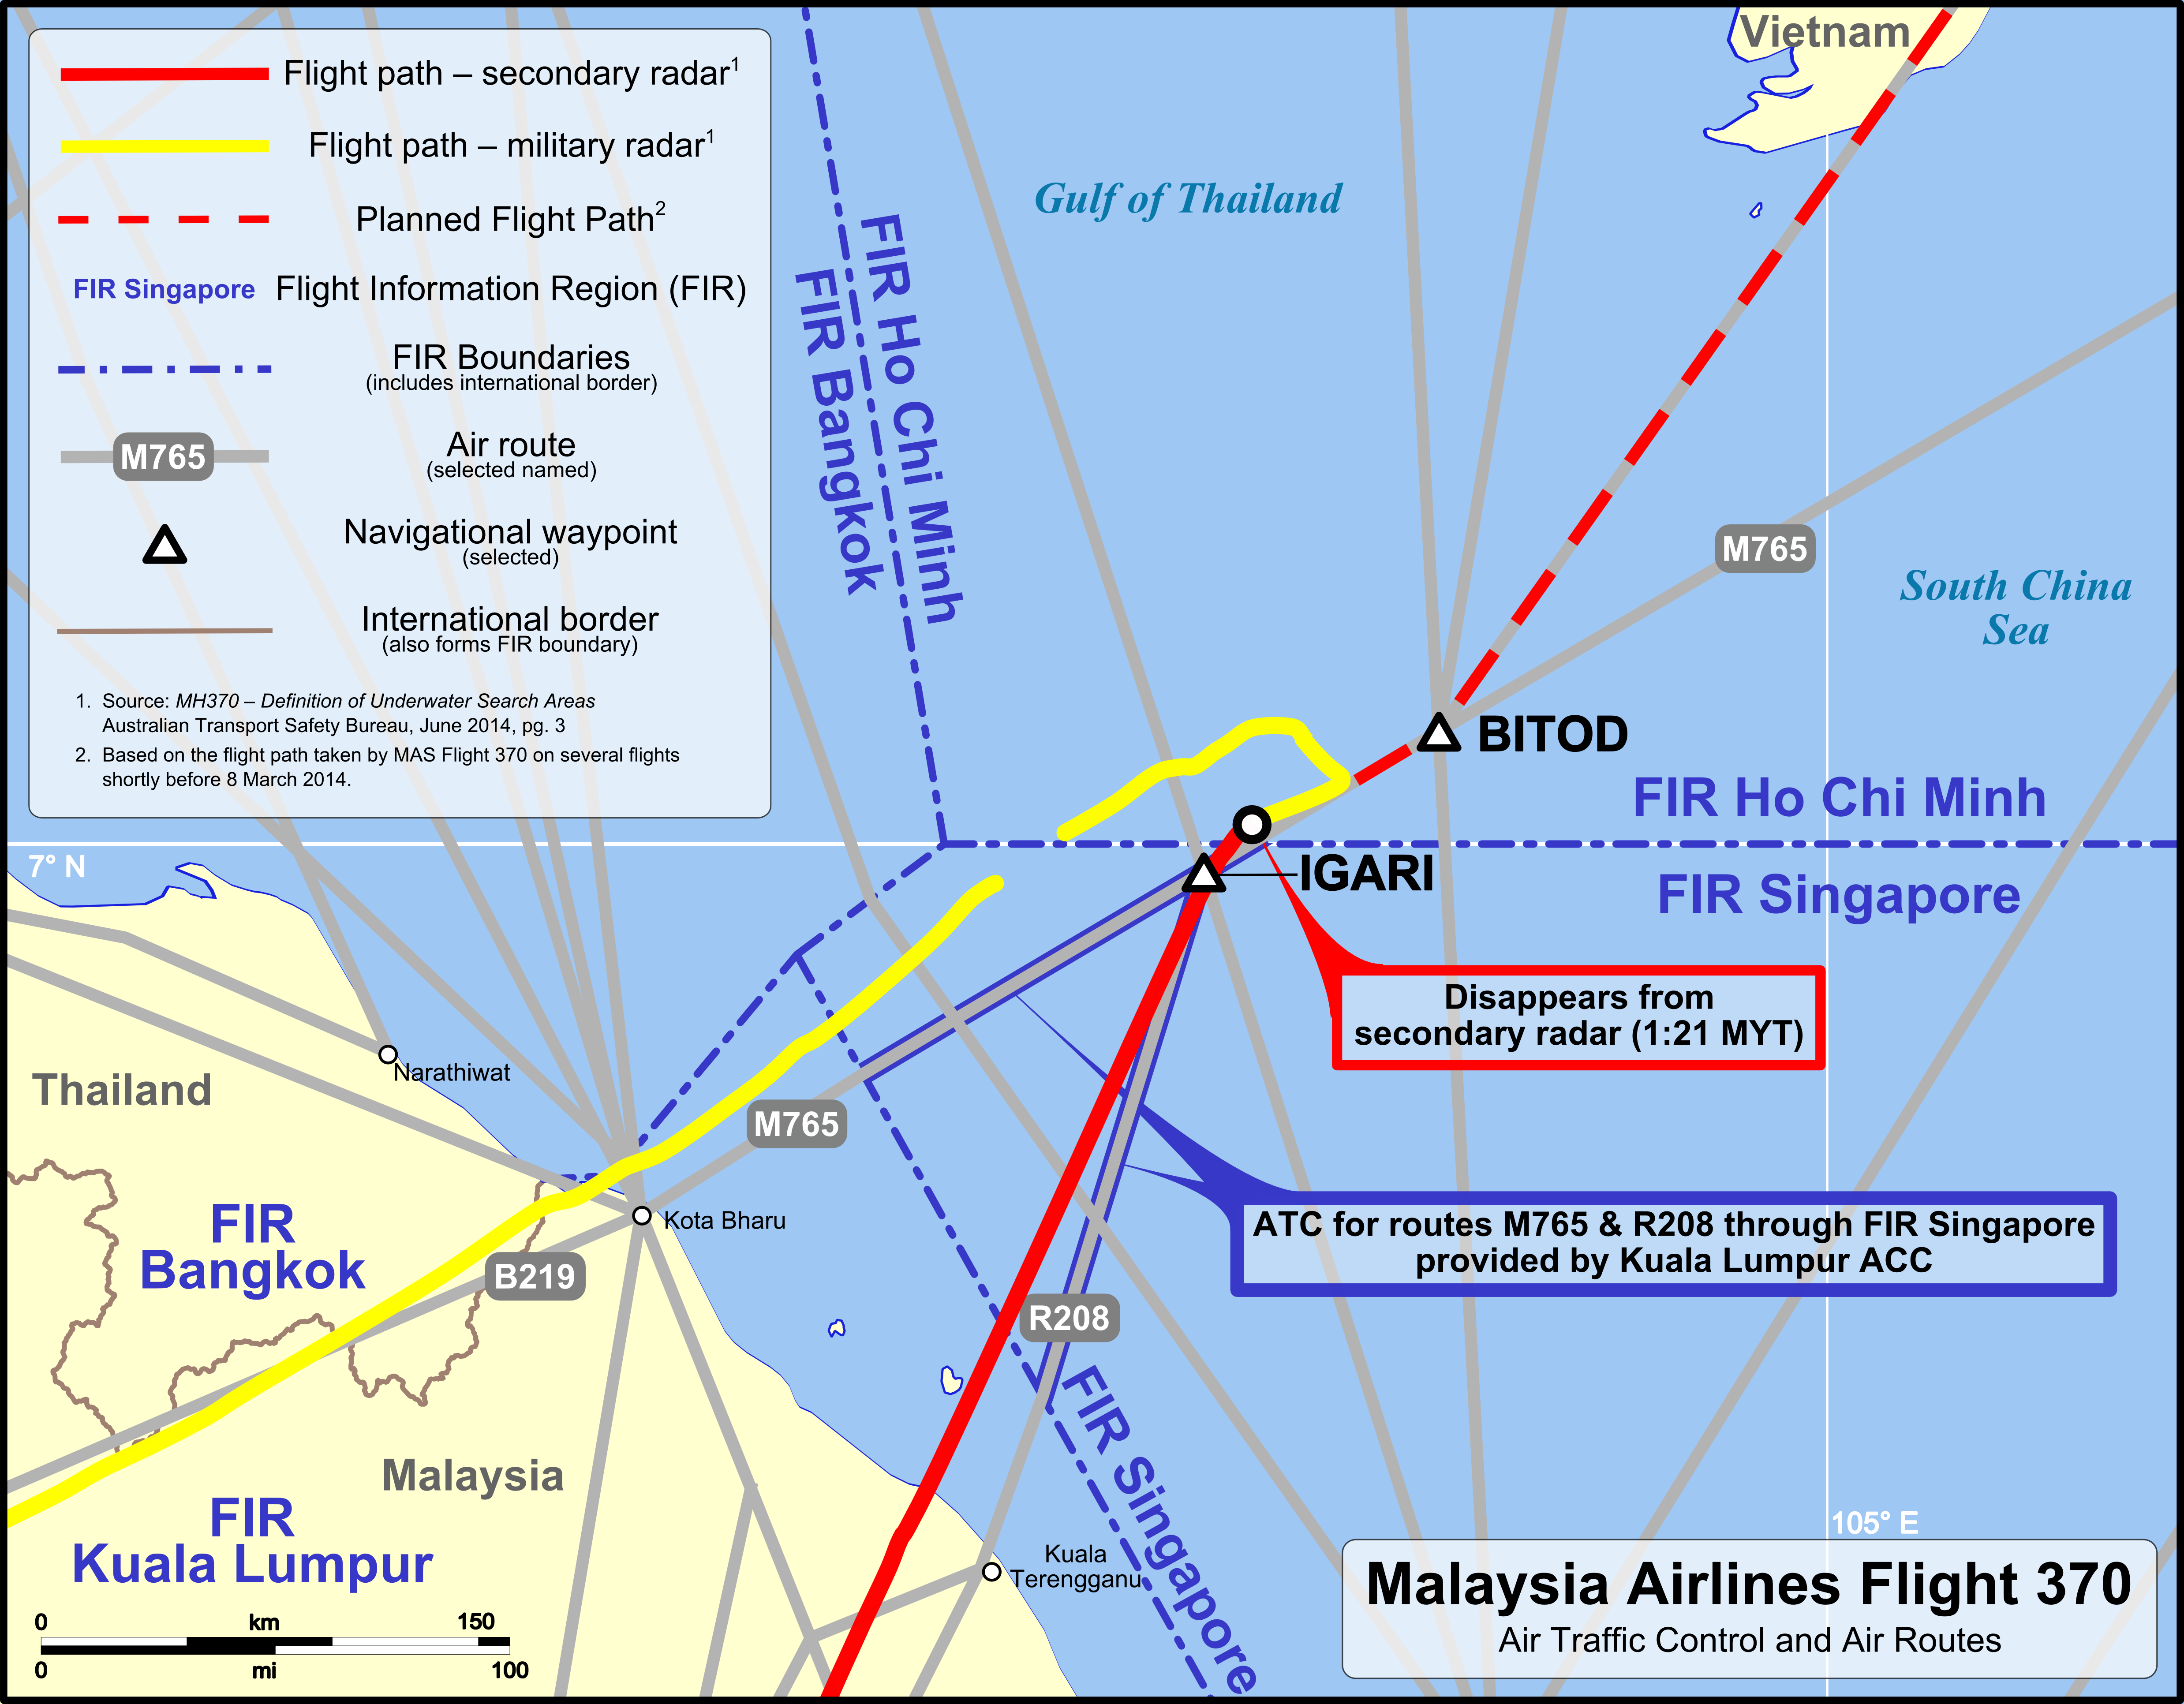 MH370_ATC_and_air_routes_map